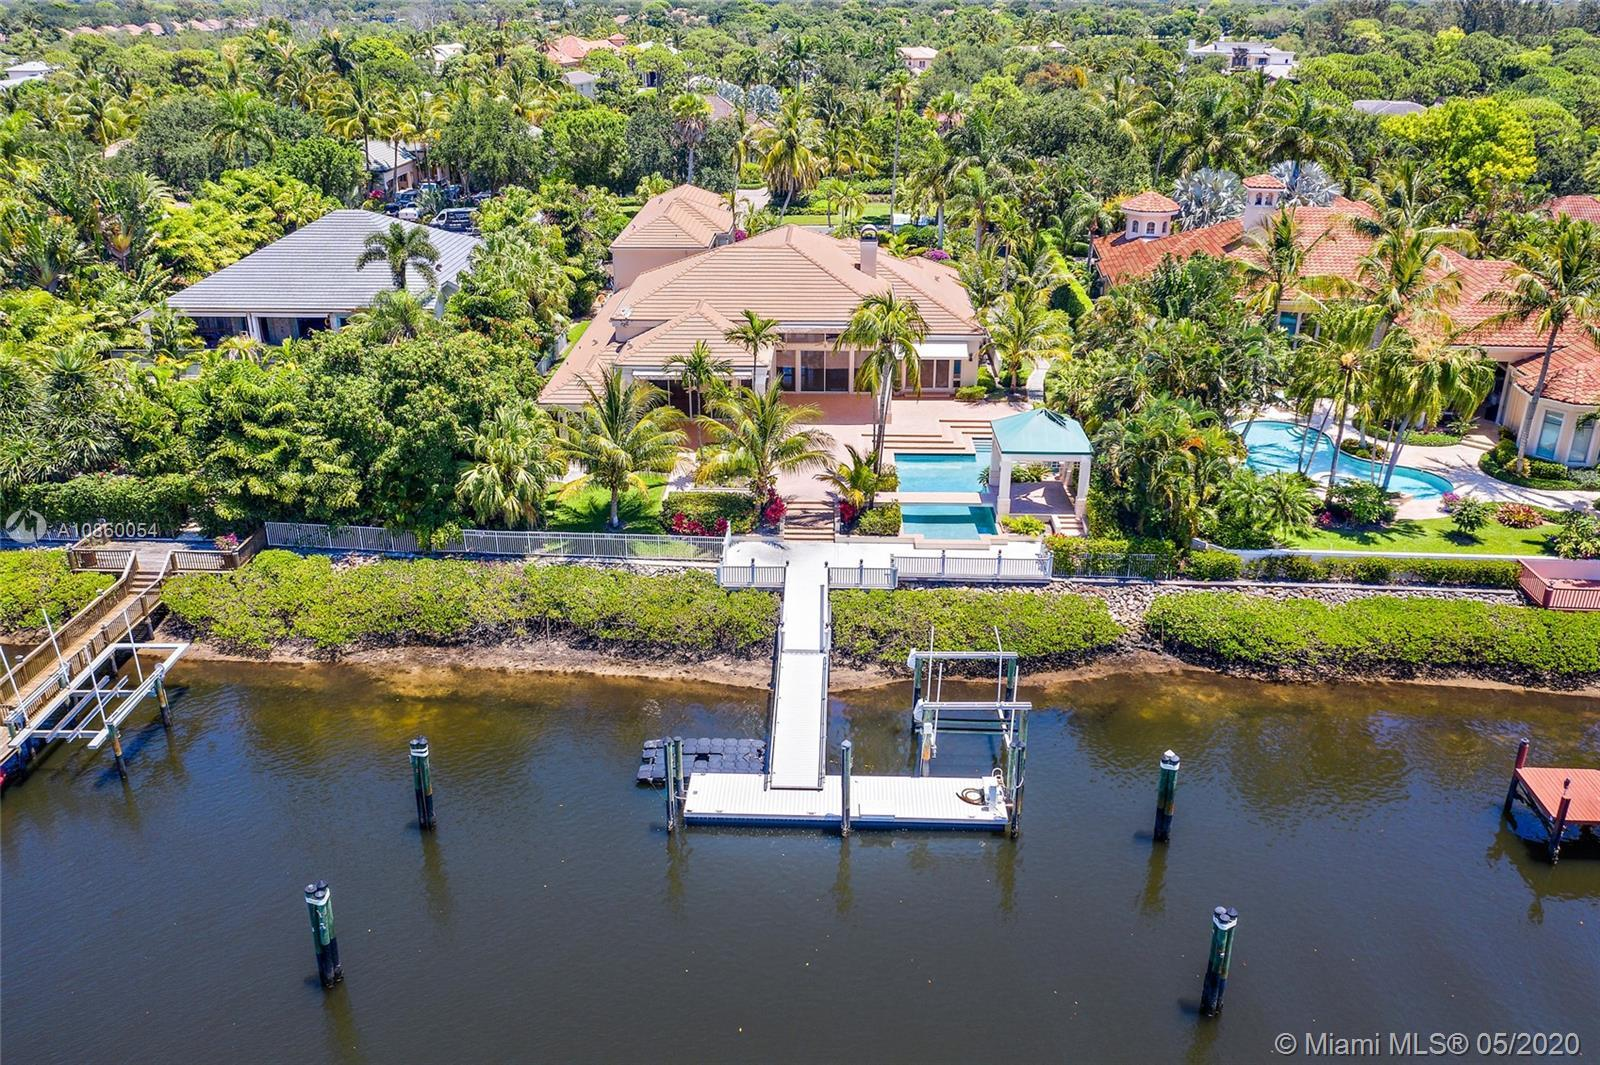 Vacant and Easy to Show! This custom home has a Rare Social Membership in Admirals Cove. The larger